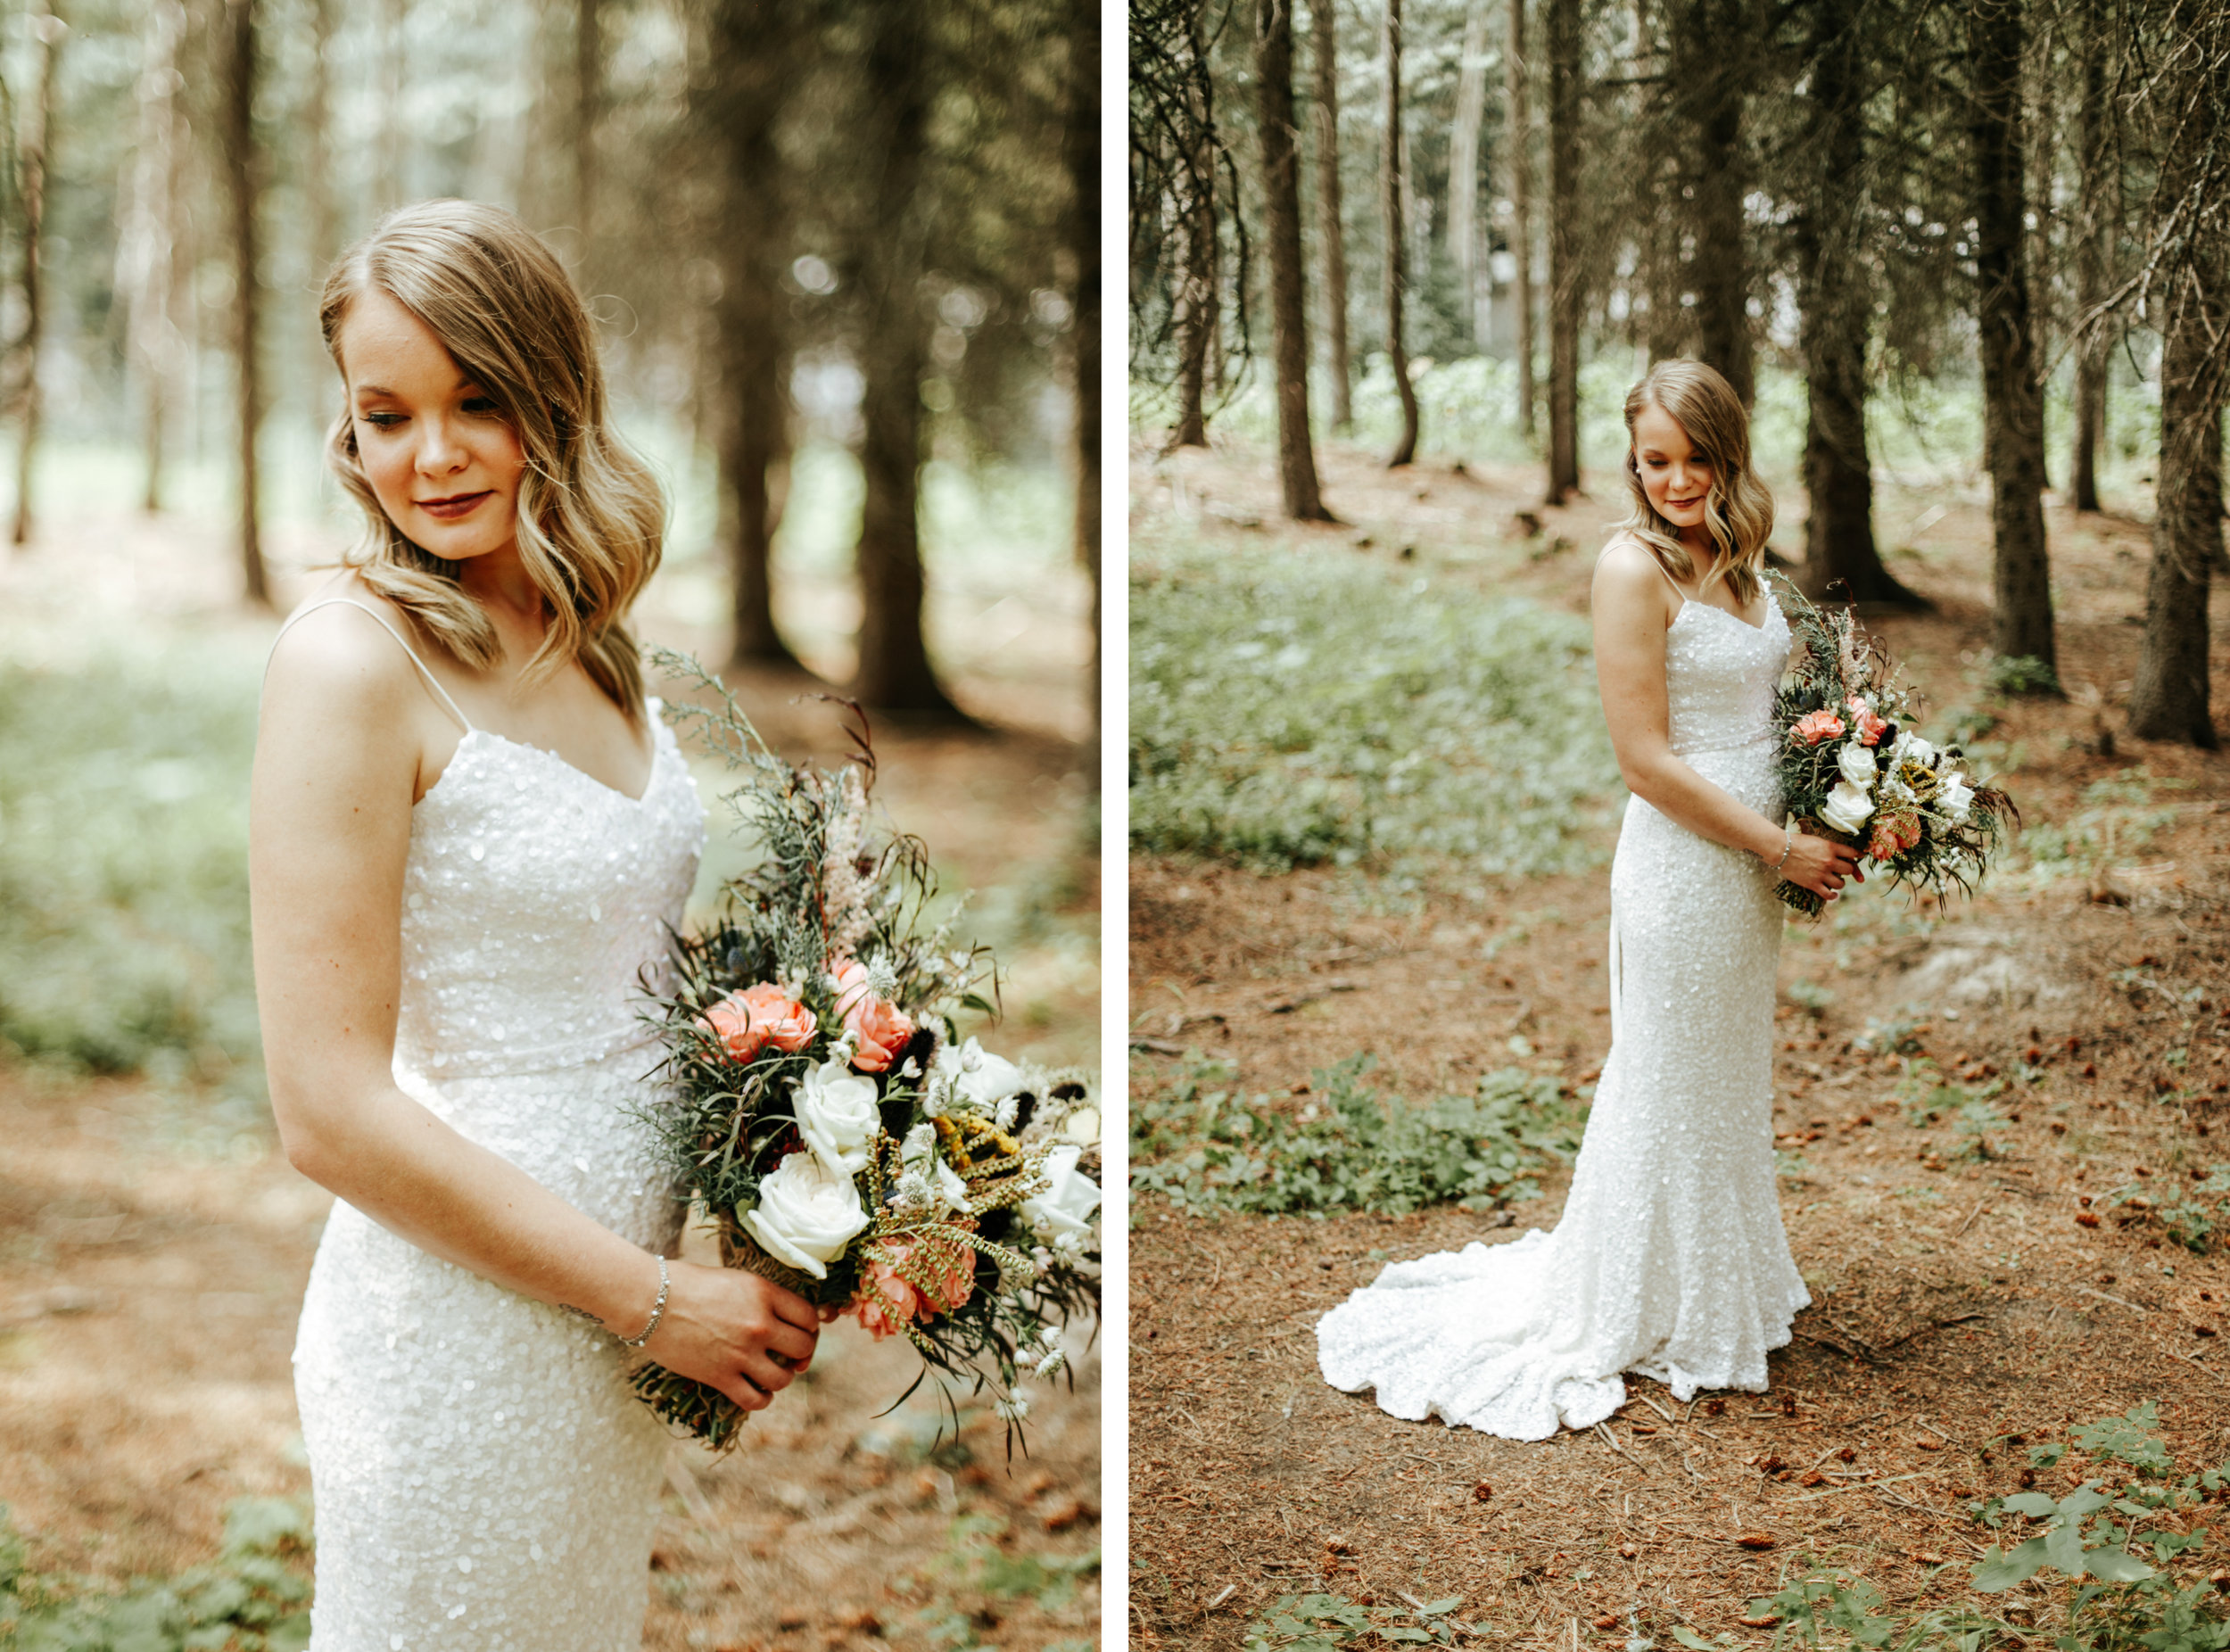 castle-mountain-wedding-photographer-love-and-be-loved-photography-lethbridge-pincher-creek-crowsnest-pass-yannick-rylee-photo-image-picture-109.jpg